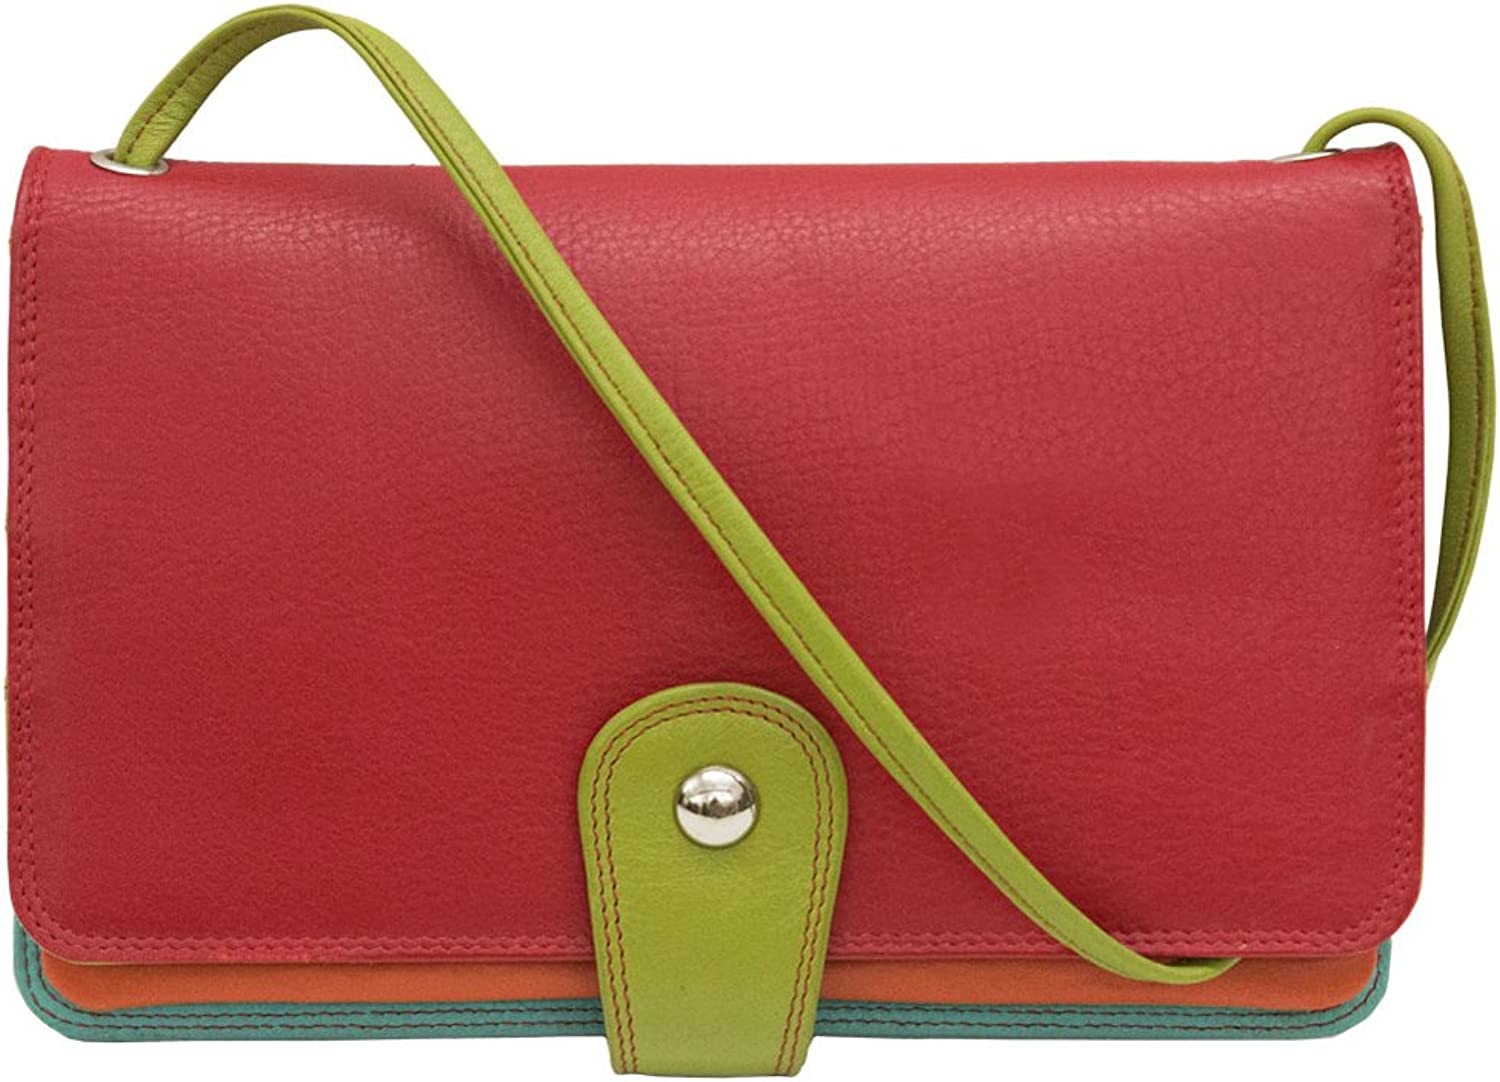 Ili New York 7879 Crossbody Multi Compartment Organizer Wallet (Citrus)